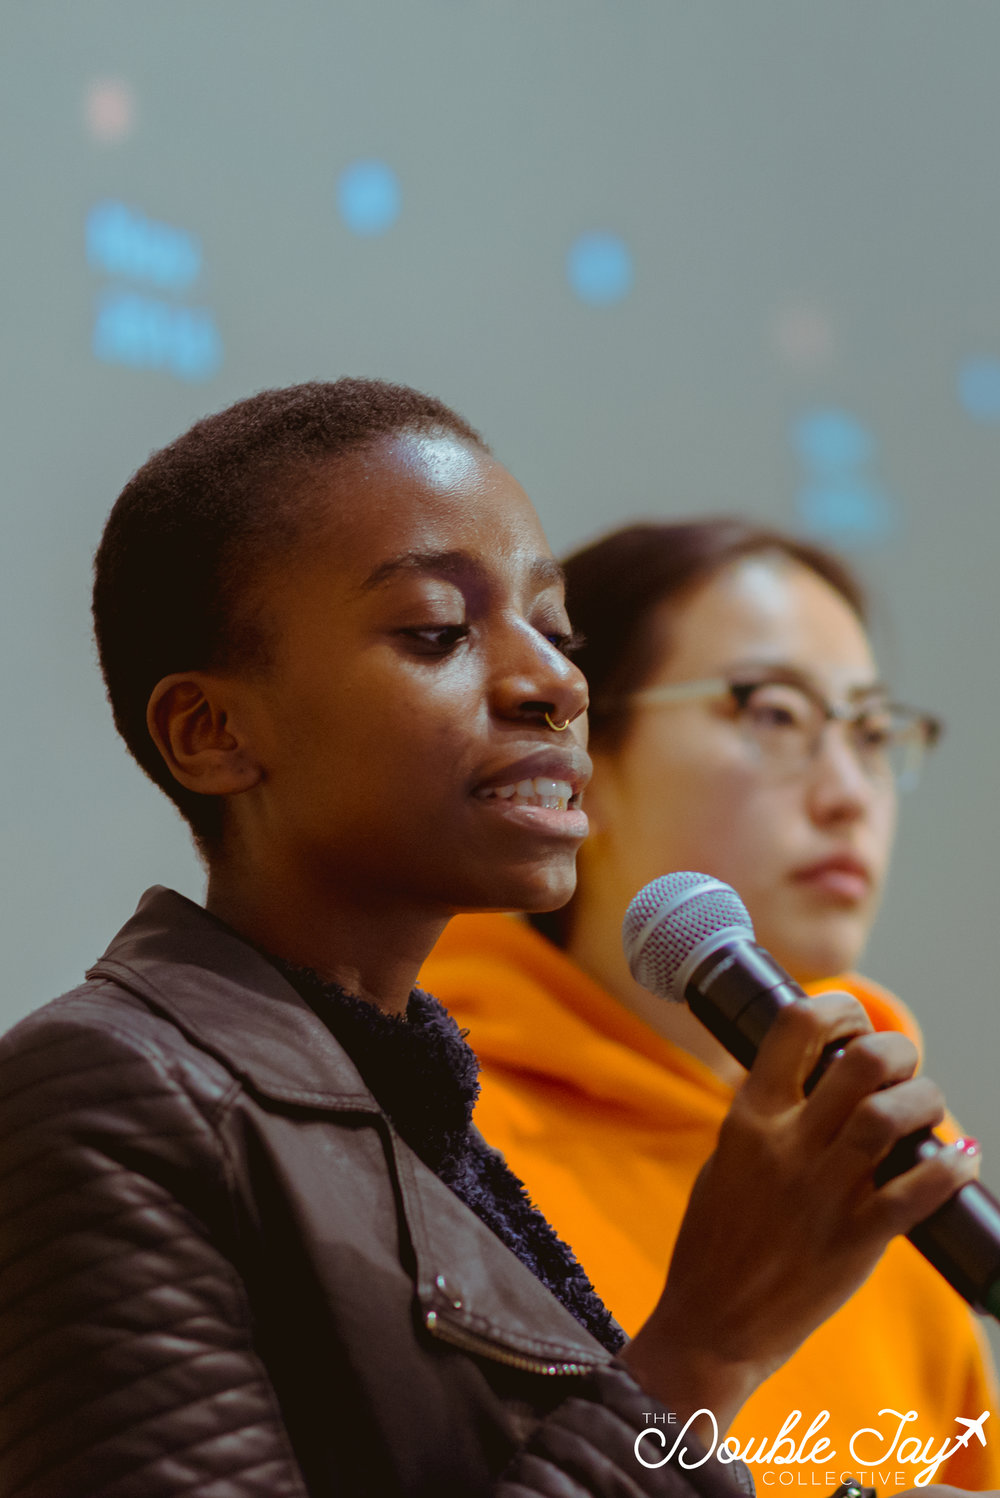 Marie Kamukuny, student at Western University, and member of OESC.